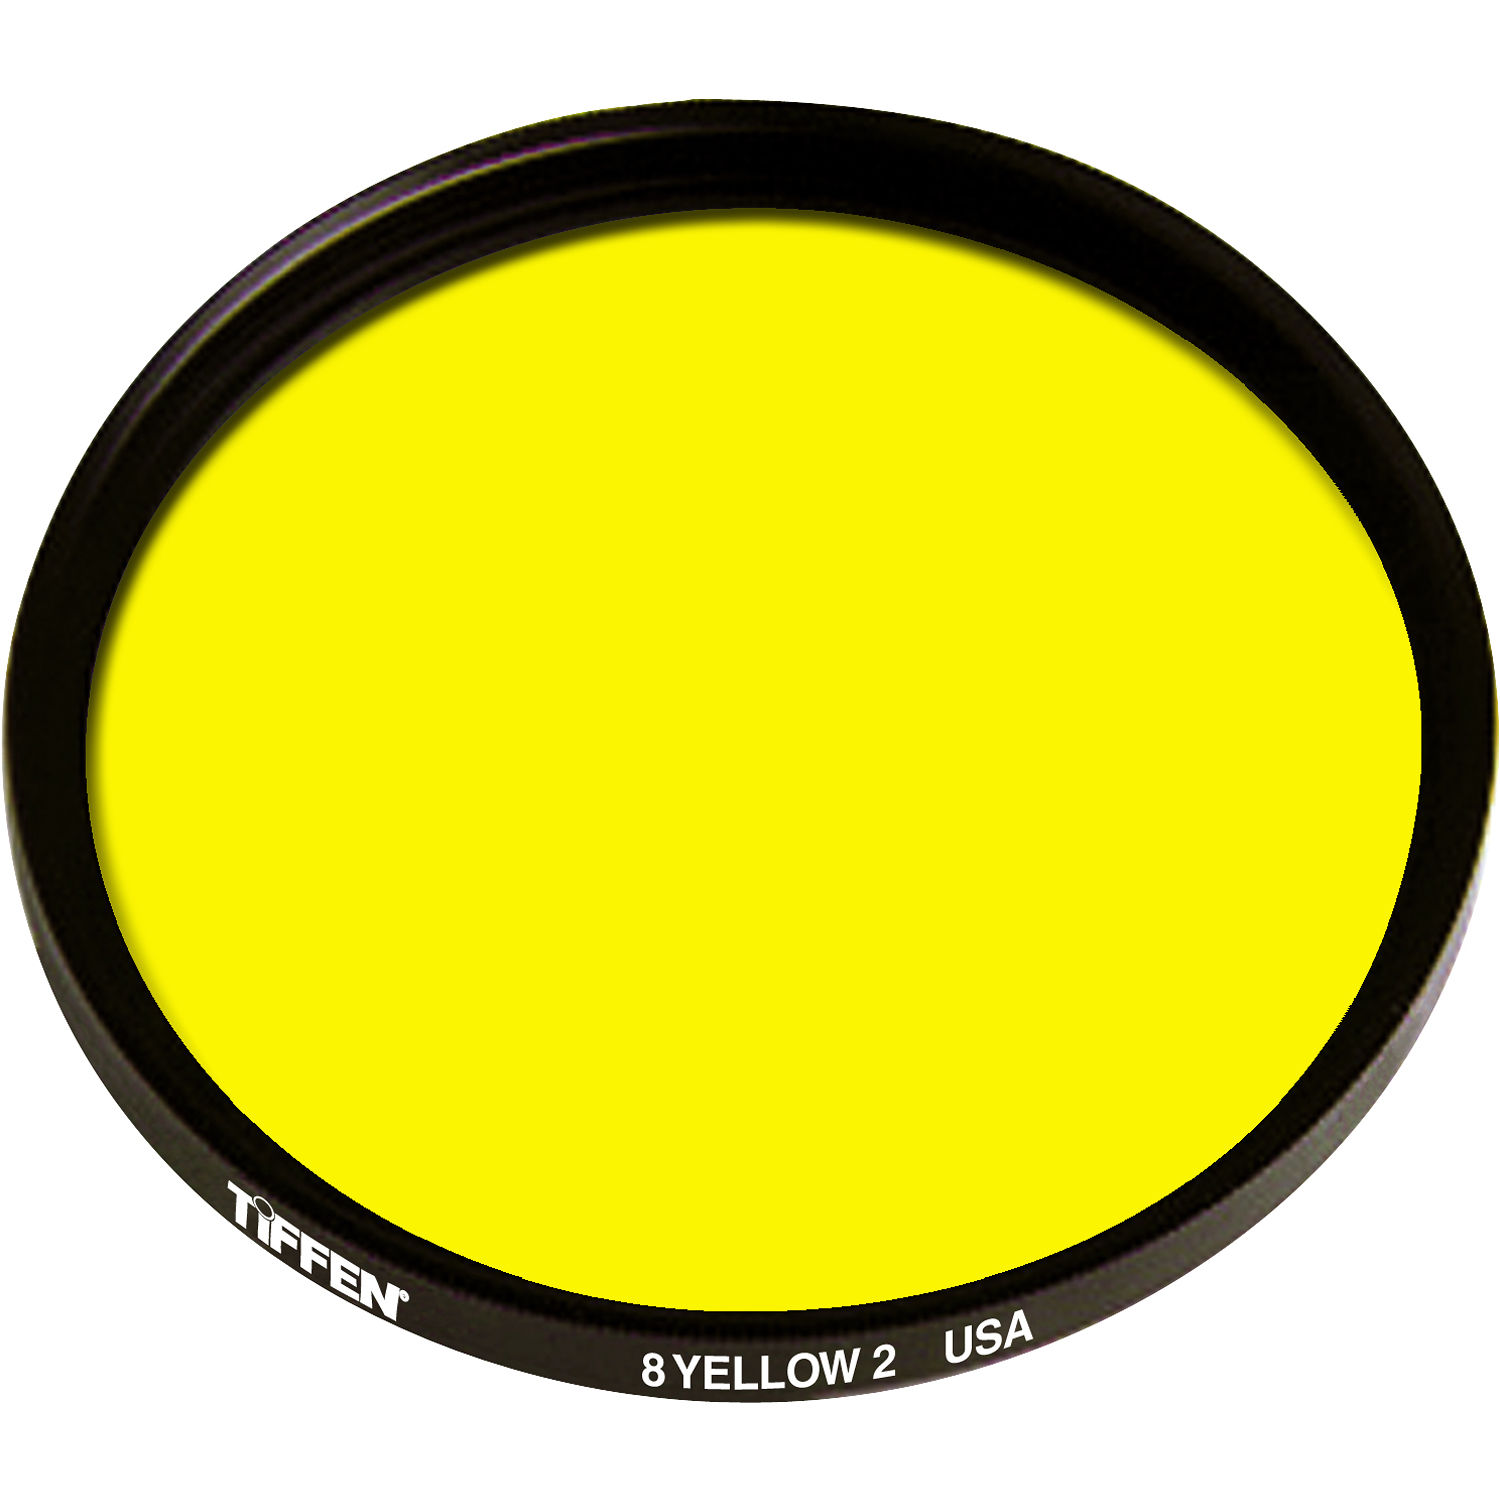 Tiffen 52mm yellow 2 8 glass filter for black white film